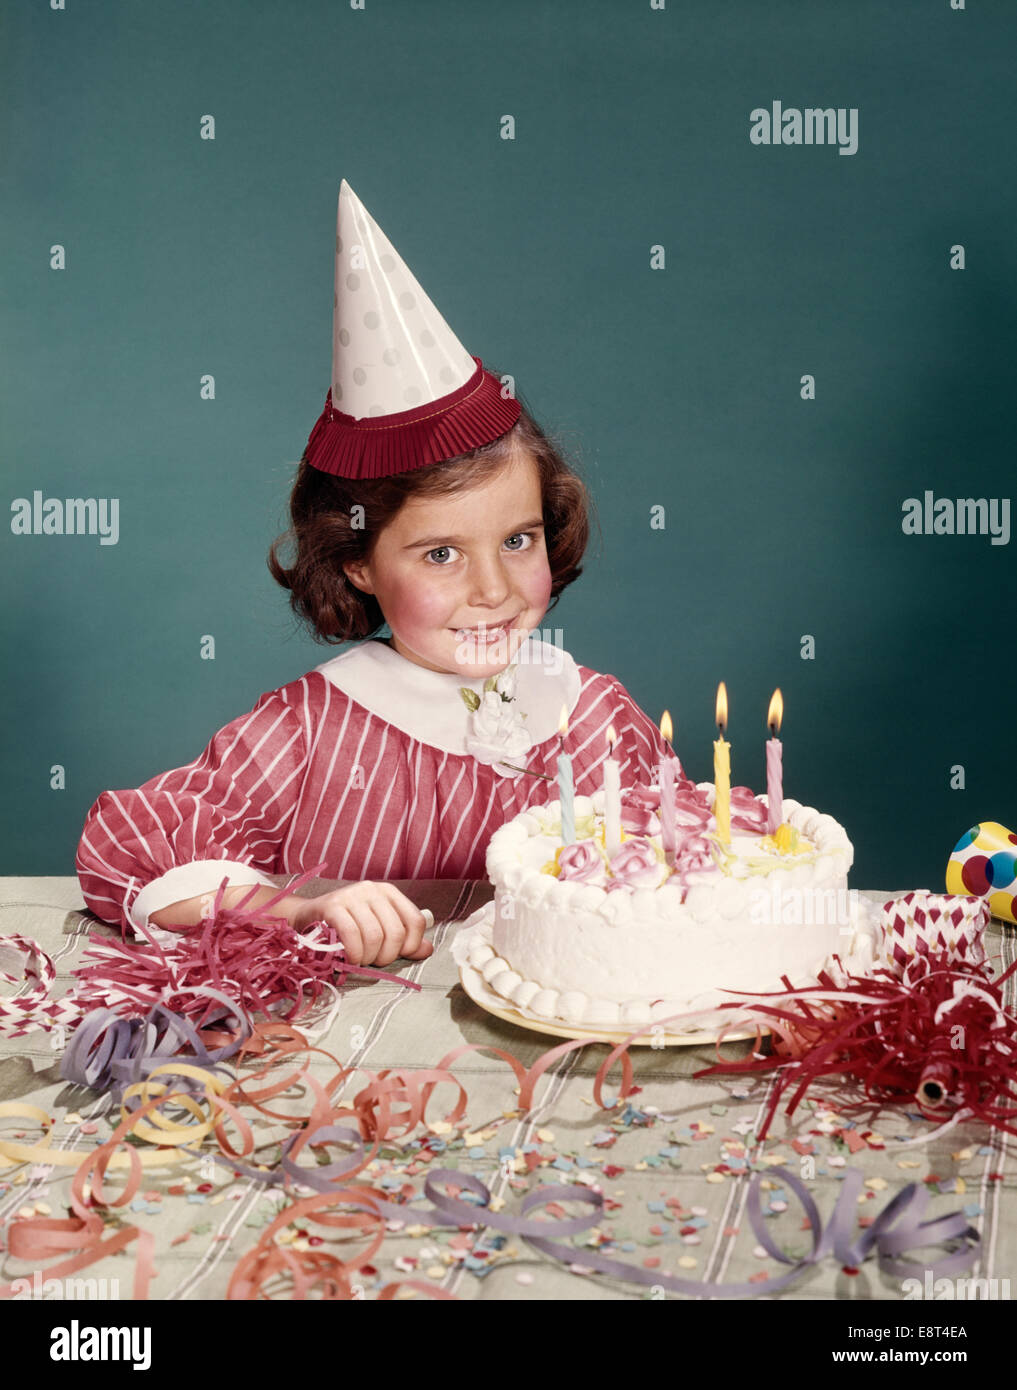 Magnificent 1960S Smiling Girl Pink Stripe Dress With Party Hat Birthday Cake Funny Birthday Cards Online Barepcheapnameinfo